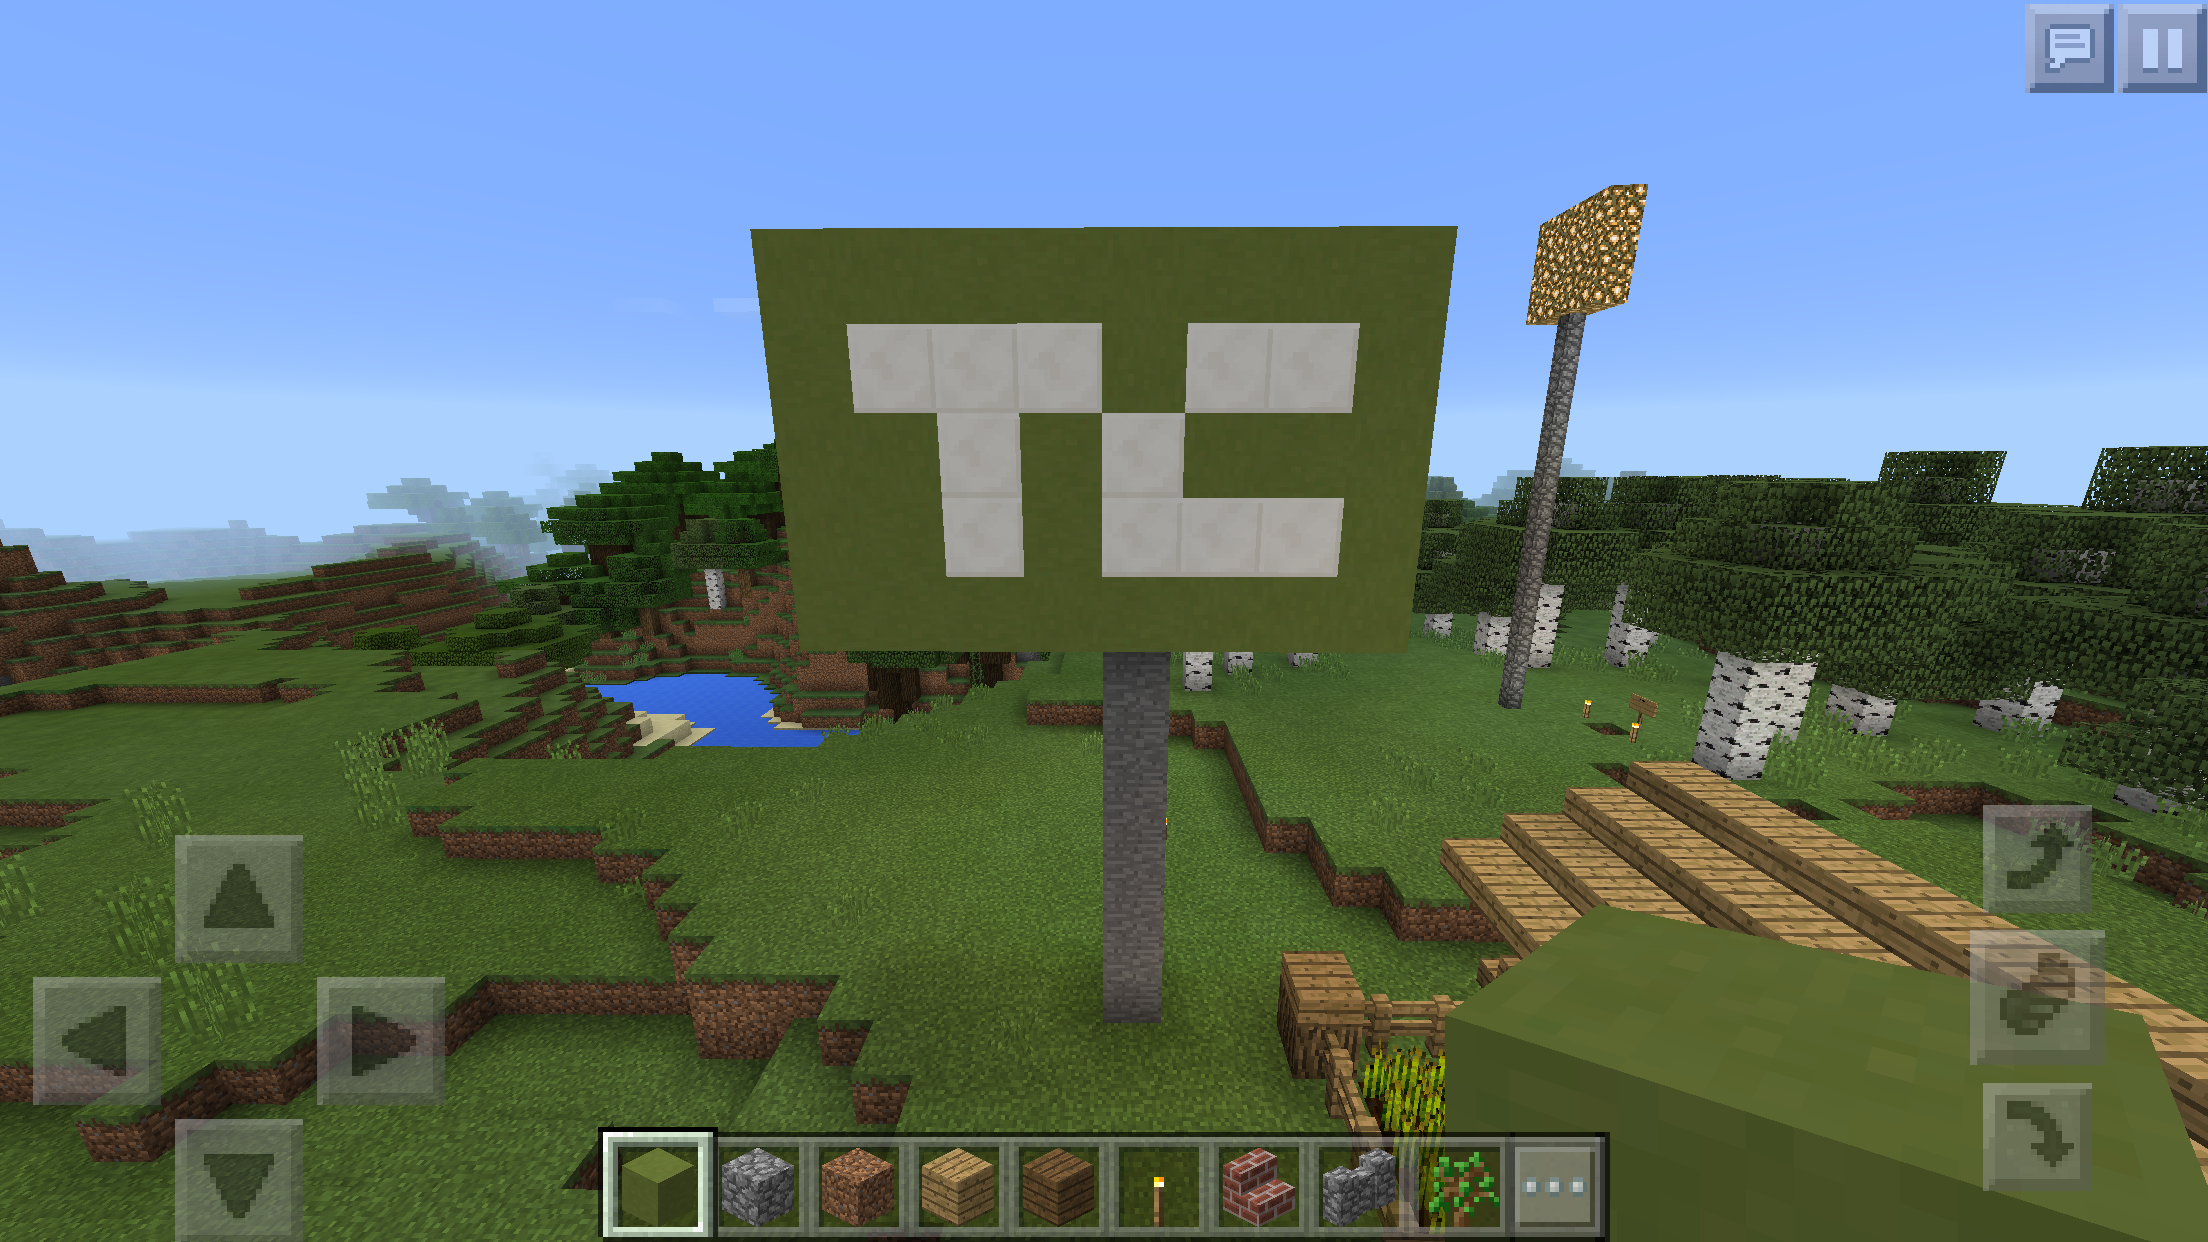 Minecraft is now available for cross-play on any device | TechCrunch